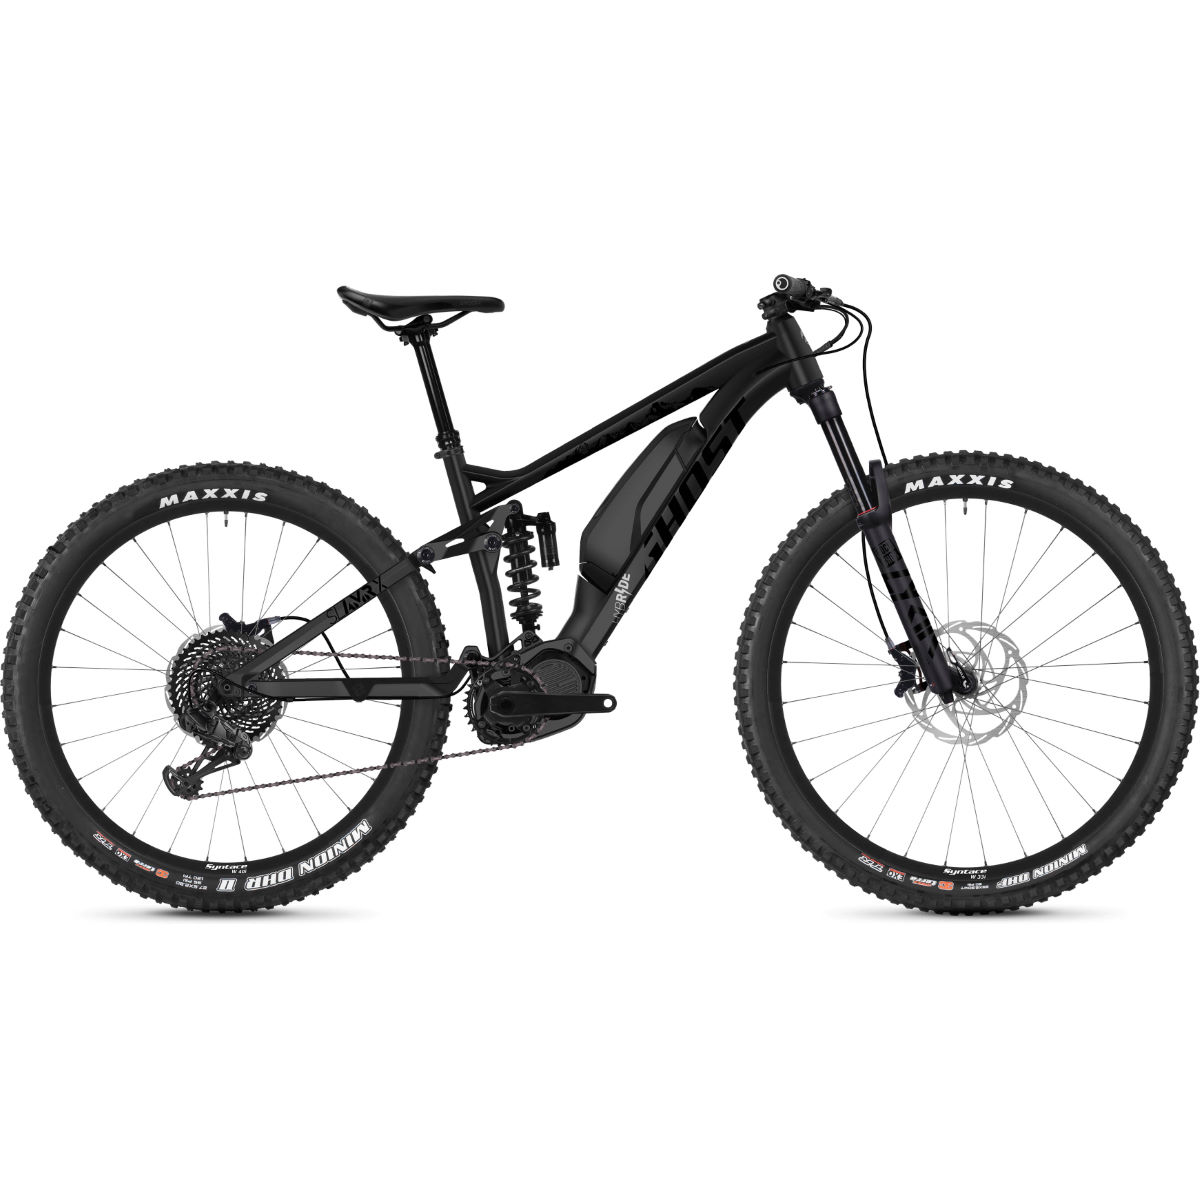 Ghost Ghost Hybride SL AMR X S4.7+ Suspension E-Bike (2020)   Electric Mountain Bikes